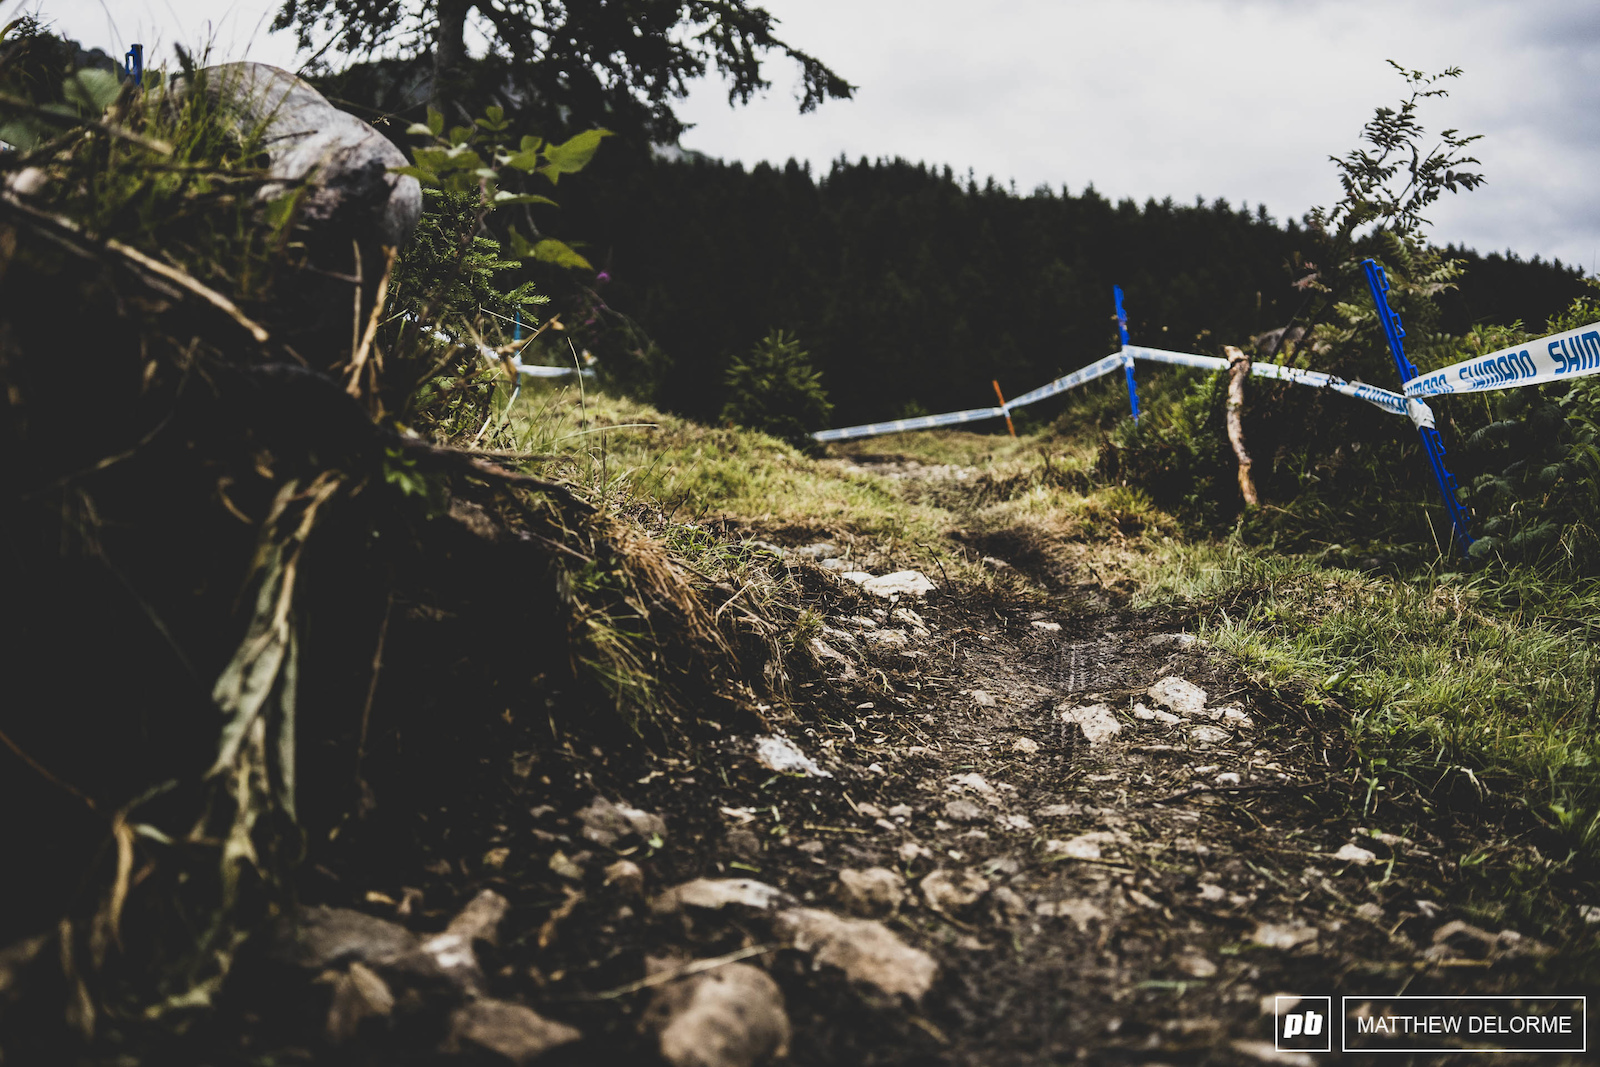 The sections of trail here just look fun to ride. I m not so sure I d want to race them though.